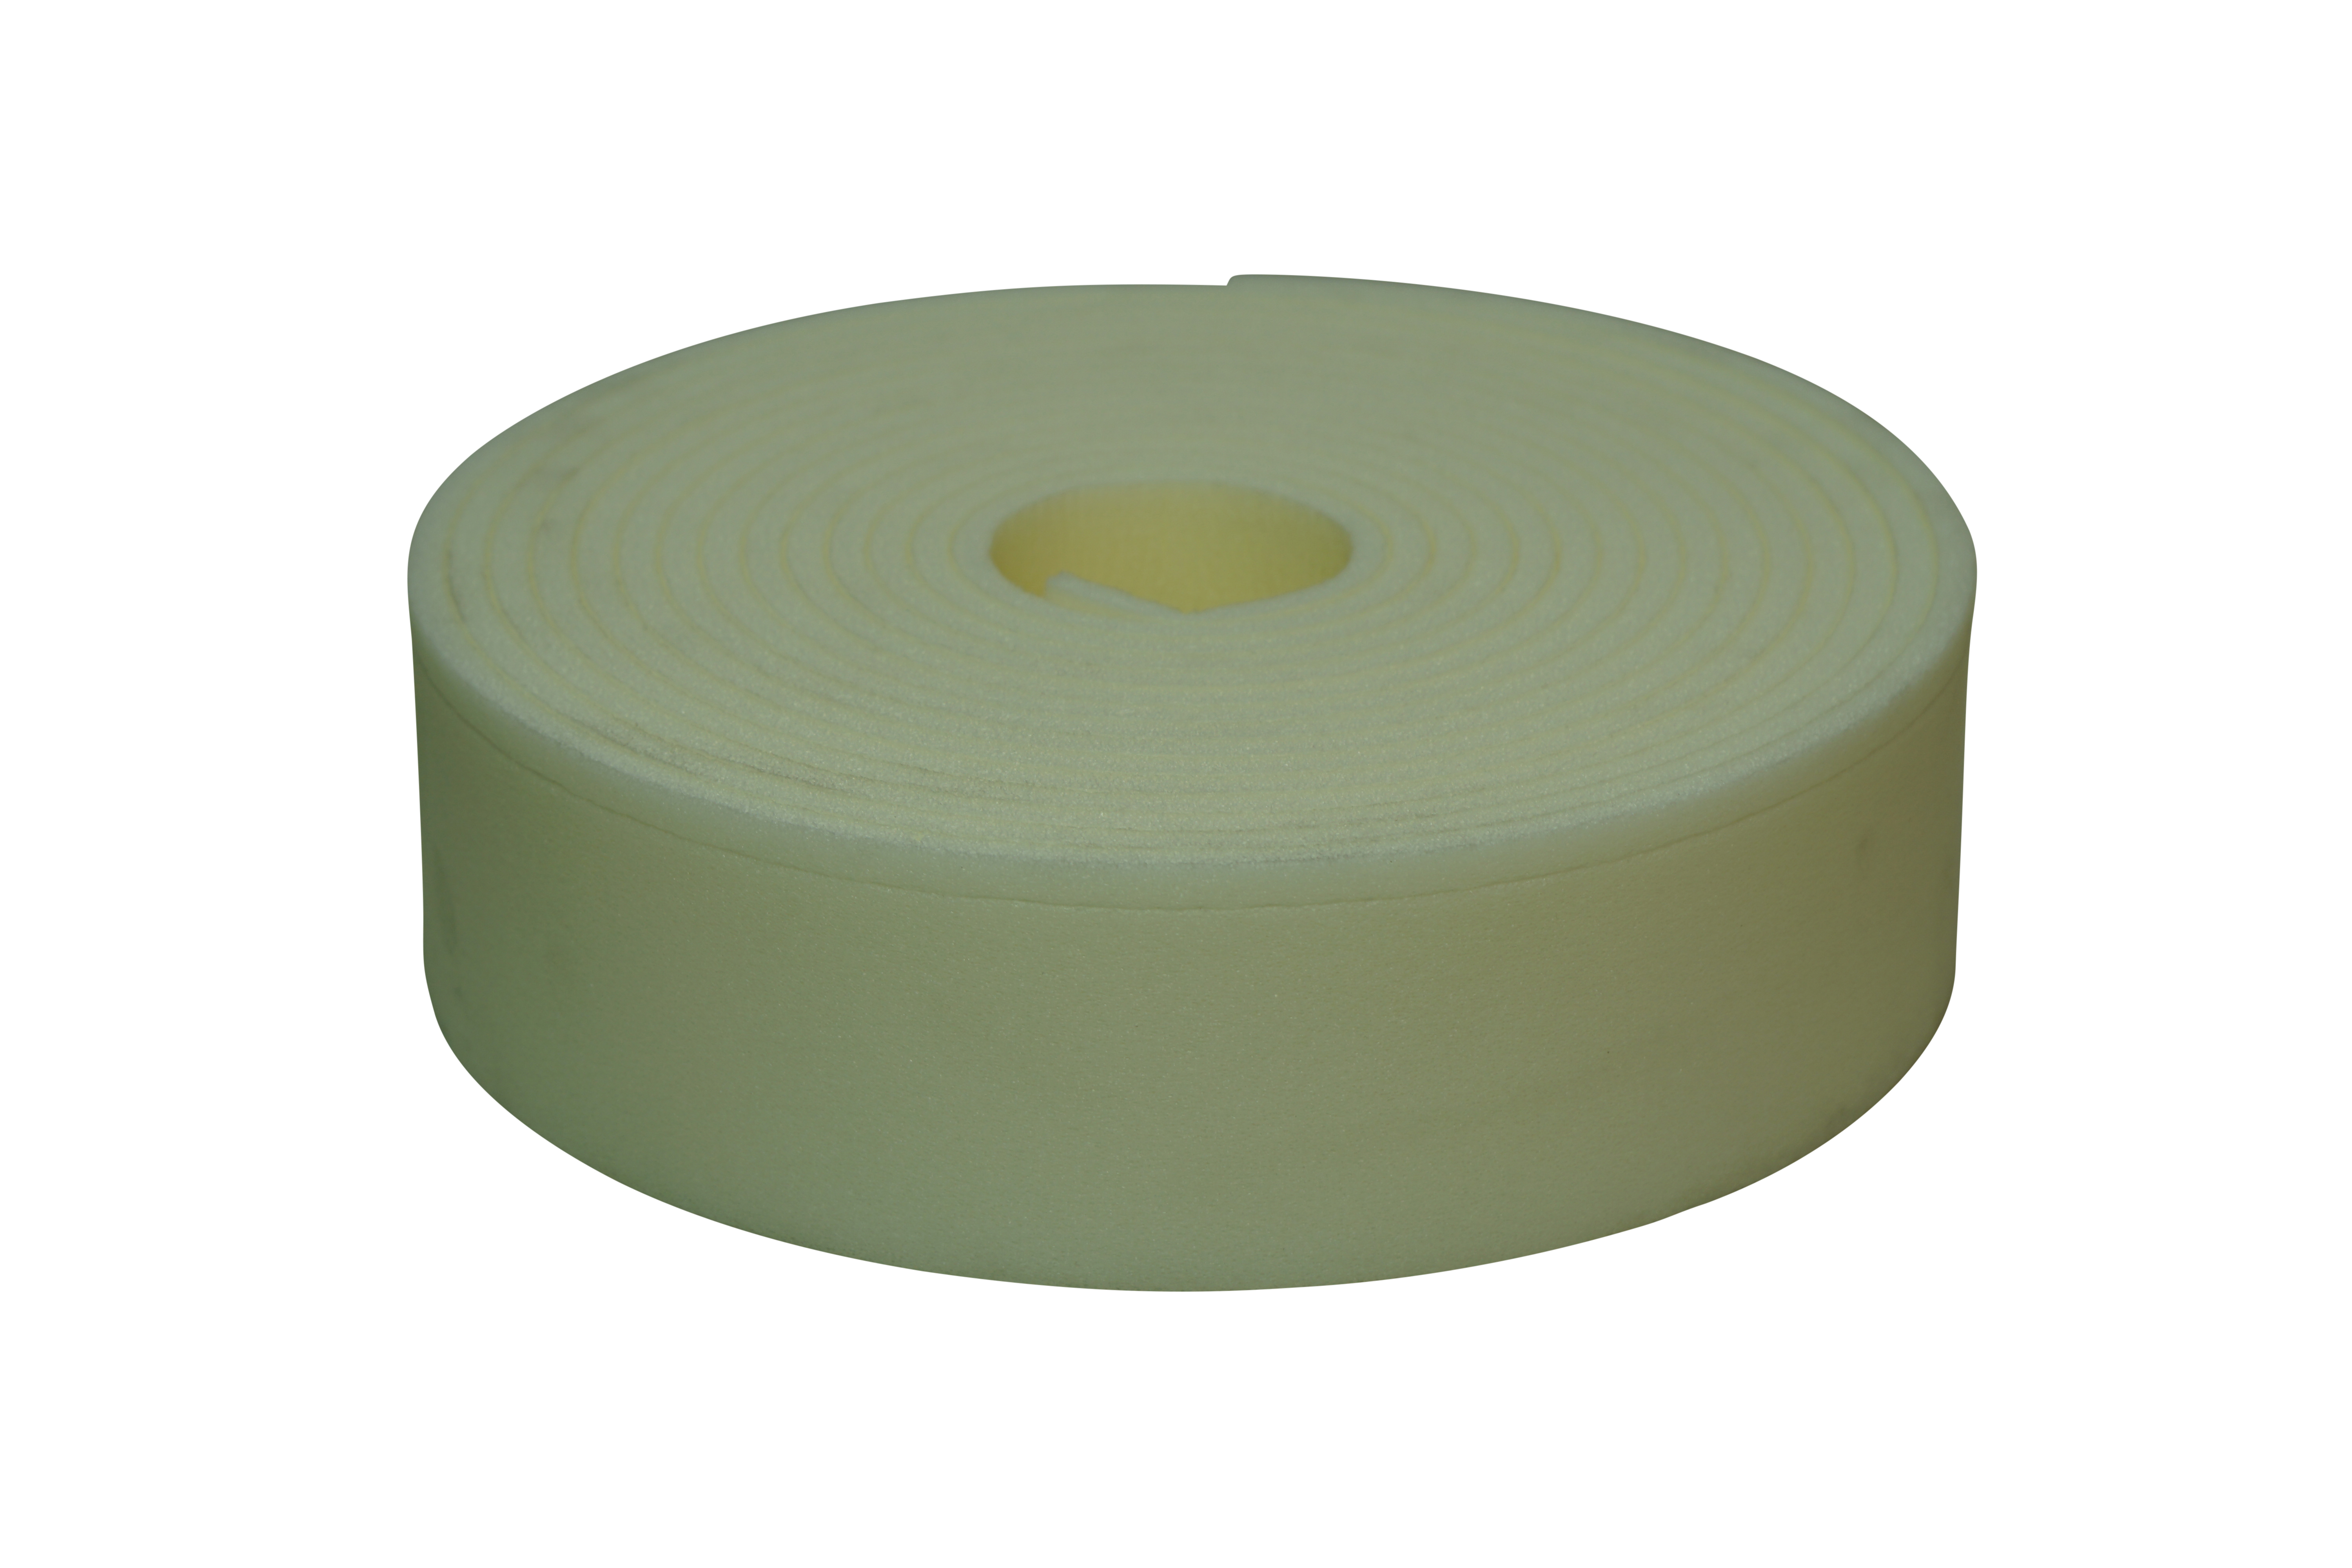 10mm Polyethlene Foam Expansion Joint Filler (10m Roll)